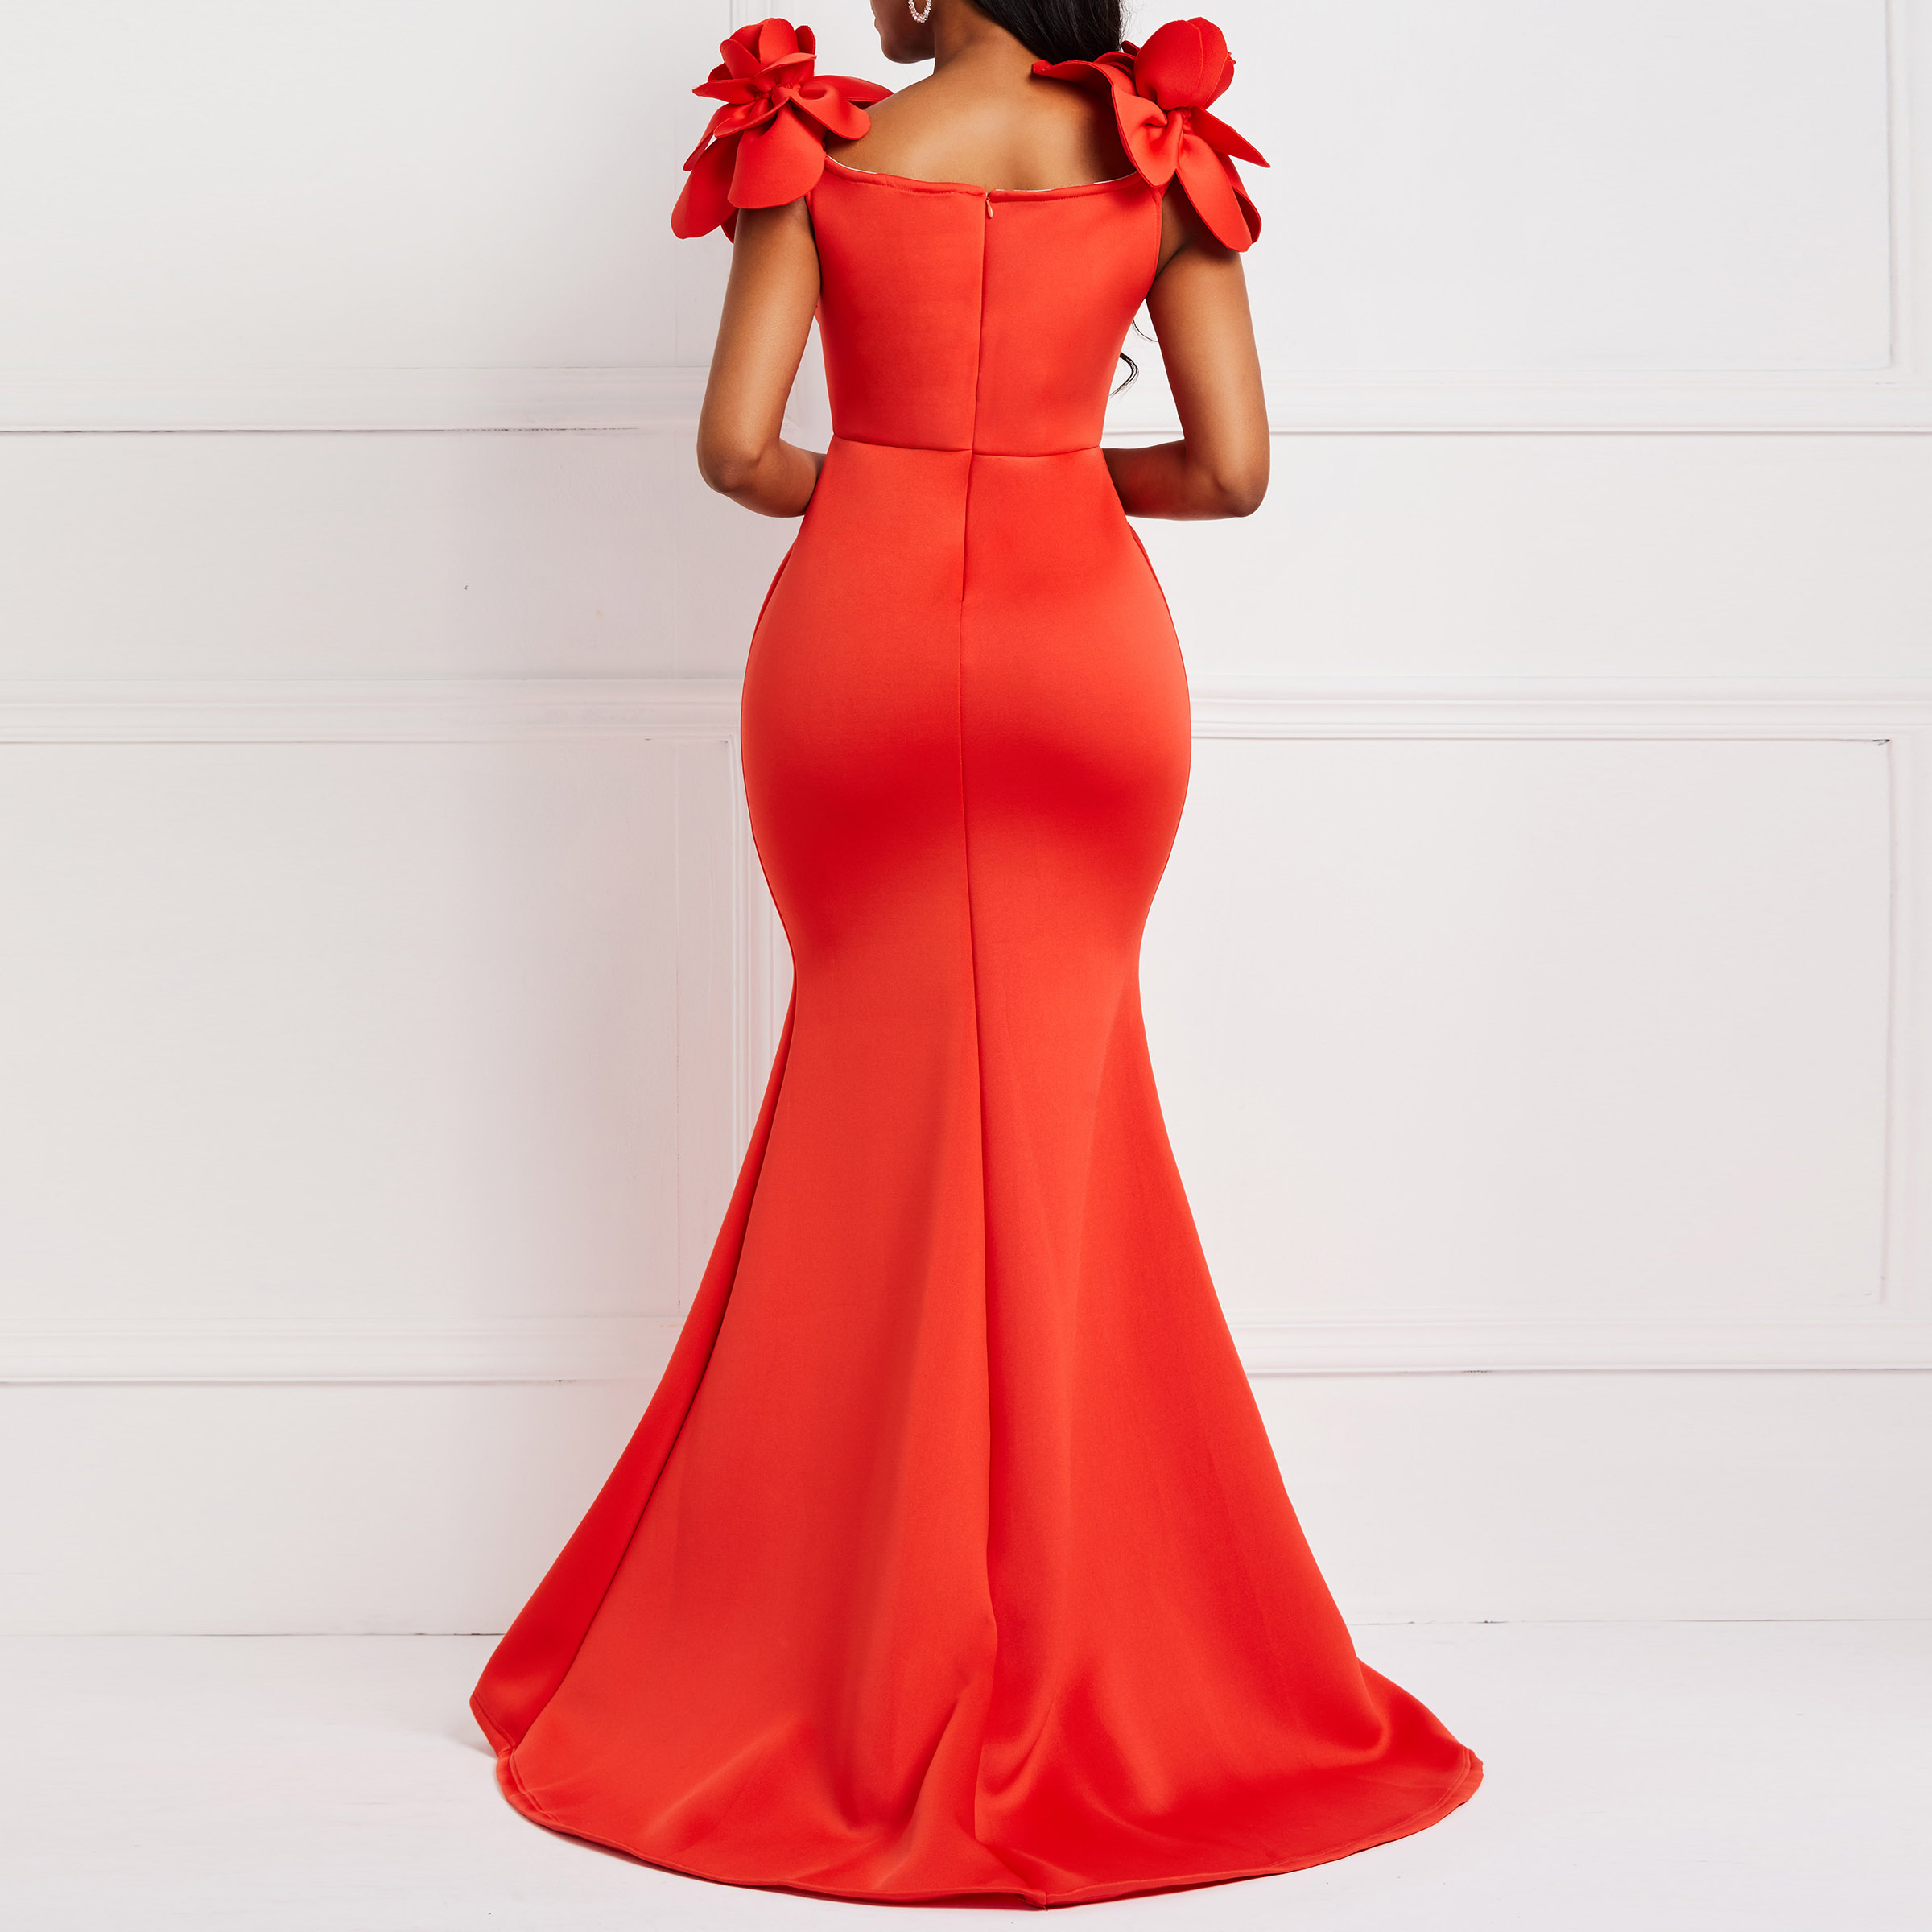 CUERLY Women Sexy Dress Ladies Retro Mermaid Maxi Dress Flower Summer Elegant Stylish Plus Size Bodycon Red Long Party Dresses in Dresses from Women 39 s Clothing